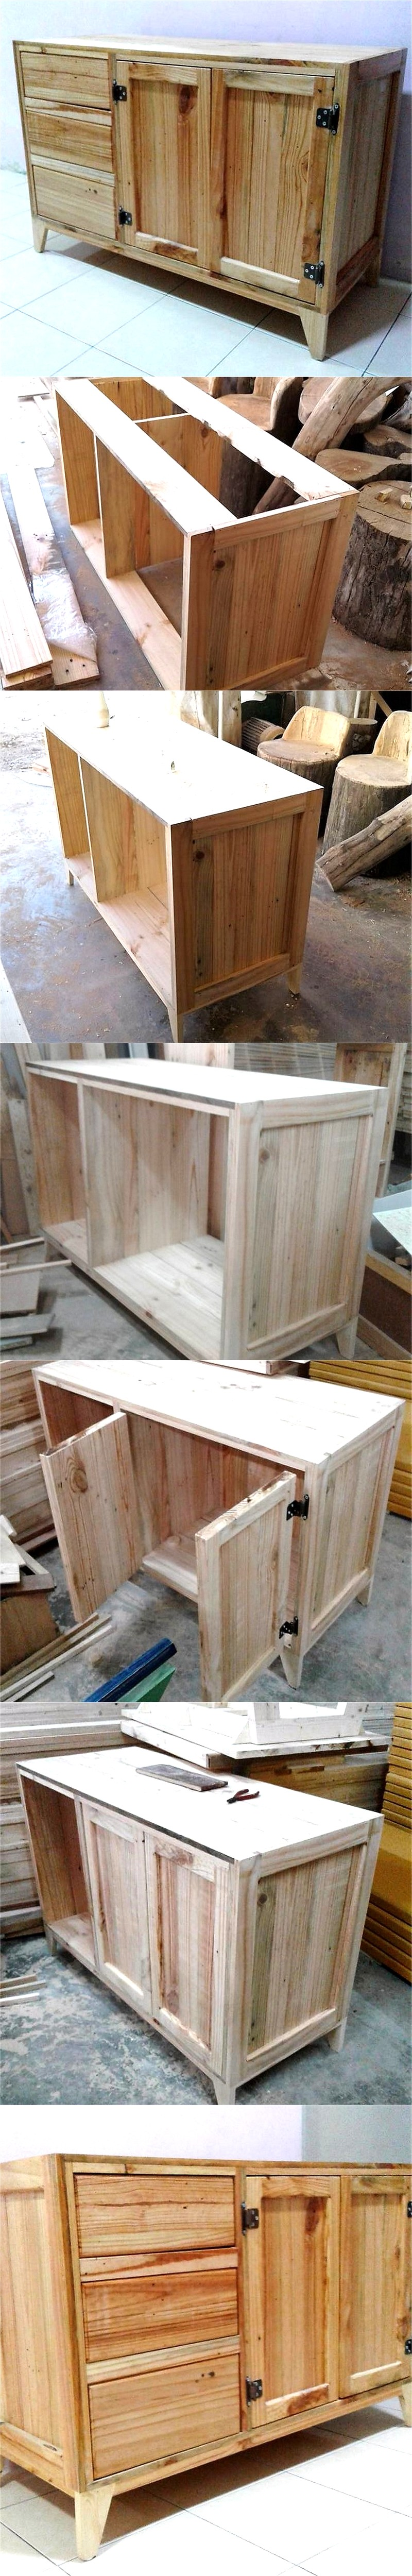 Entryway Table With Drawers diy pallet wood entryway table with drawers | pallet ideas